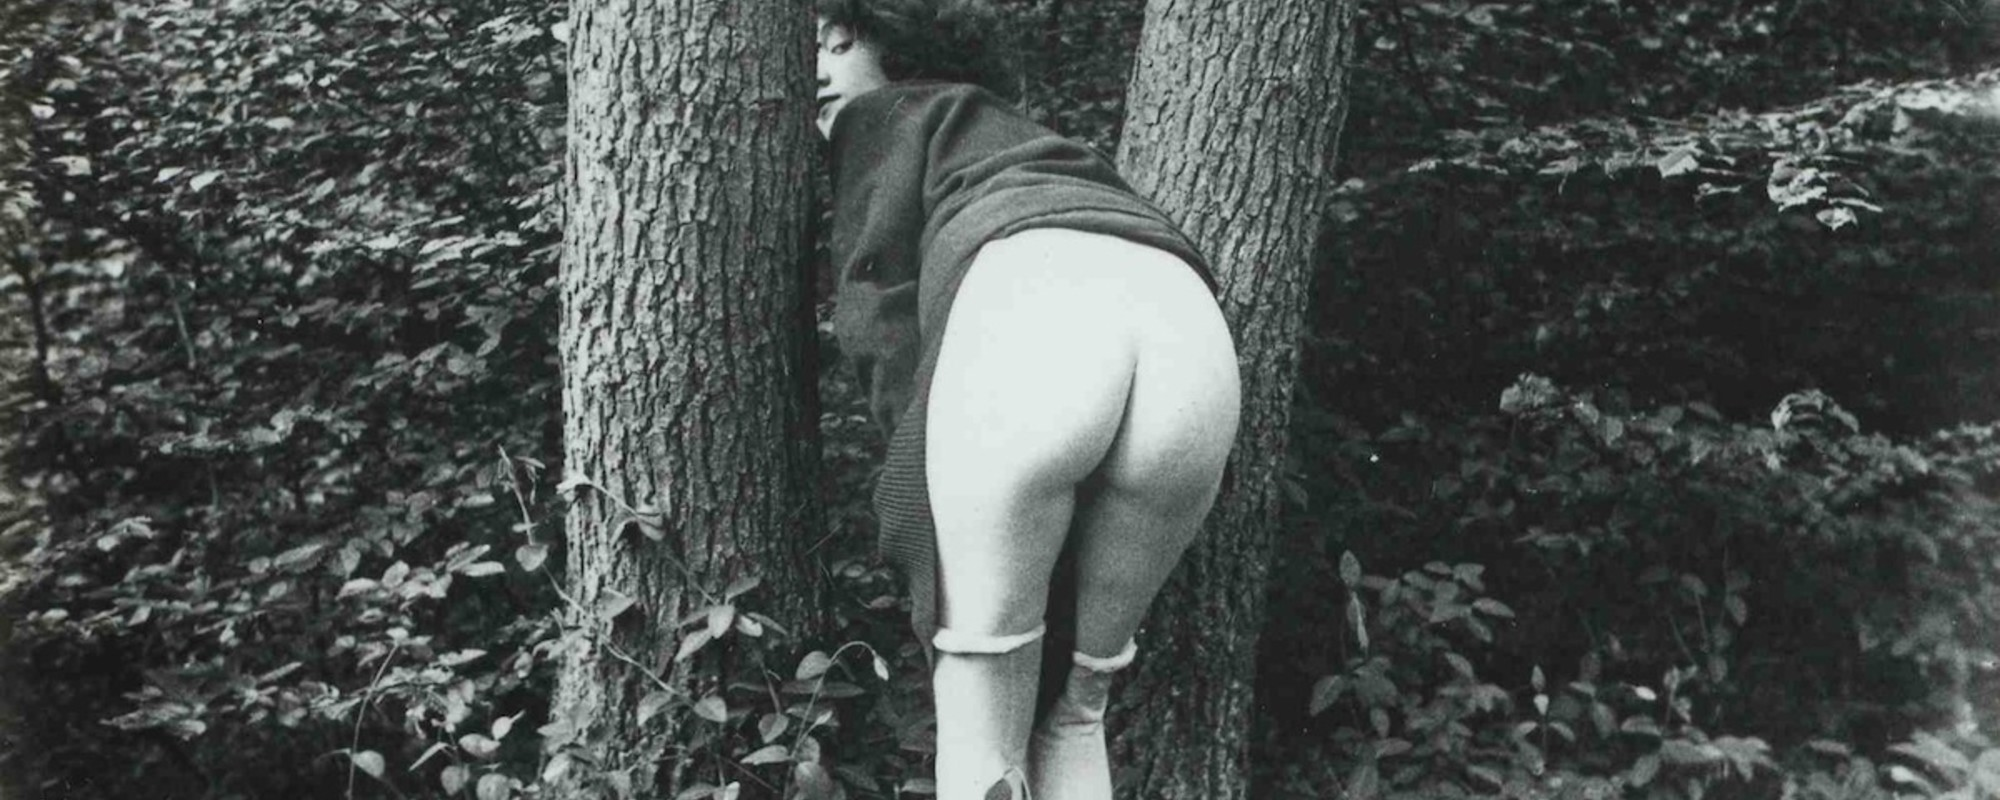 Charming Pornographic Photographs of French Prostitutes from the 1930s